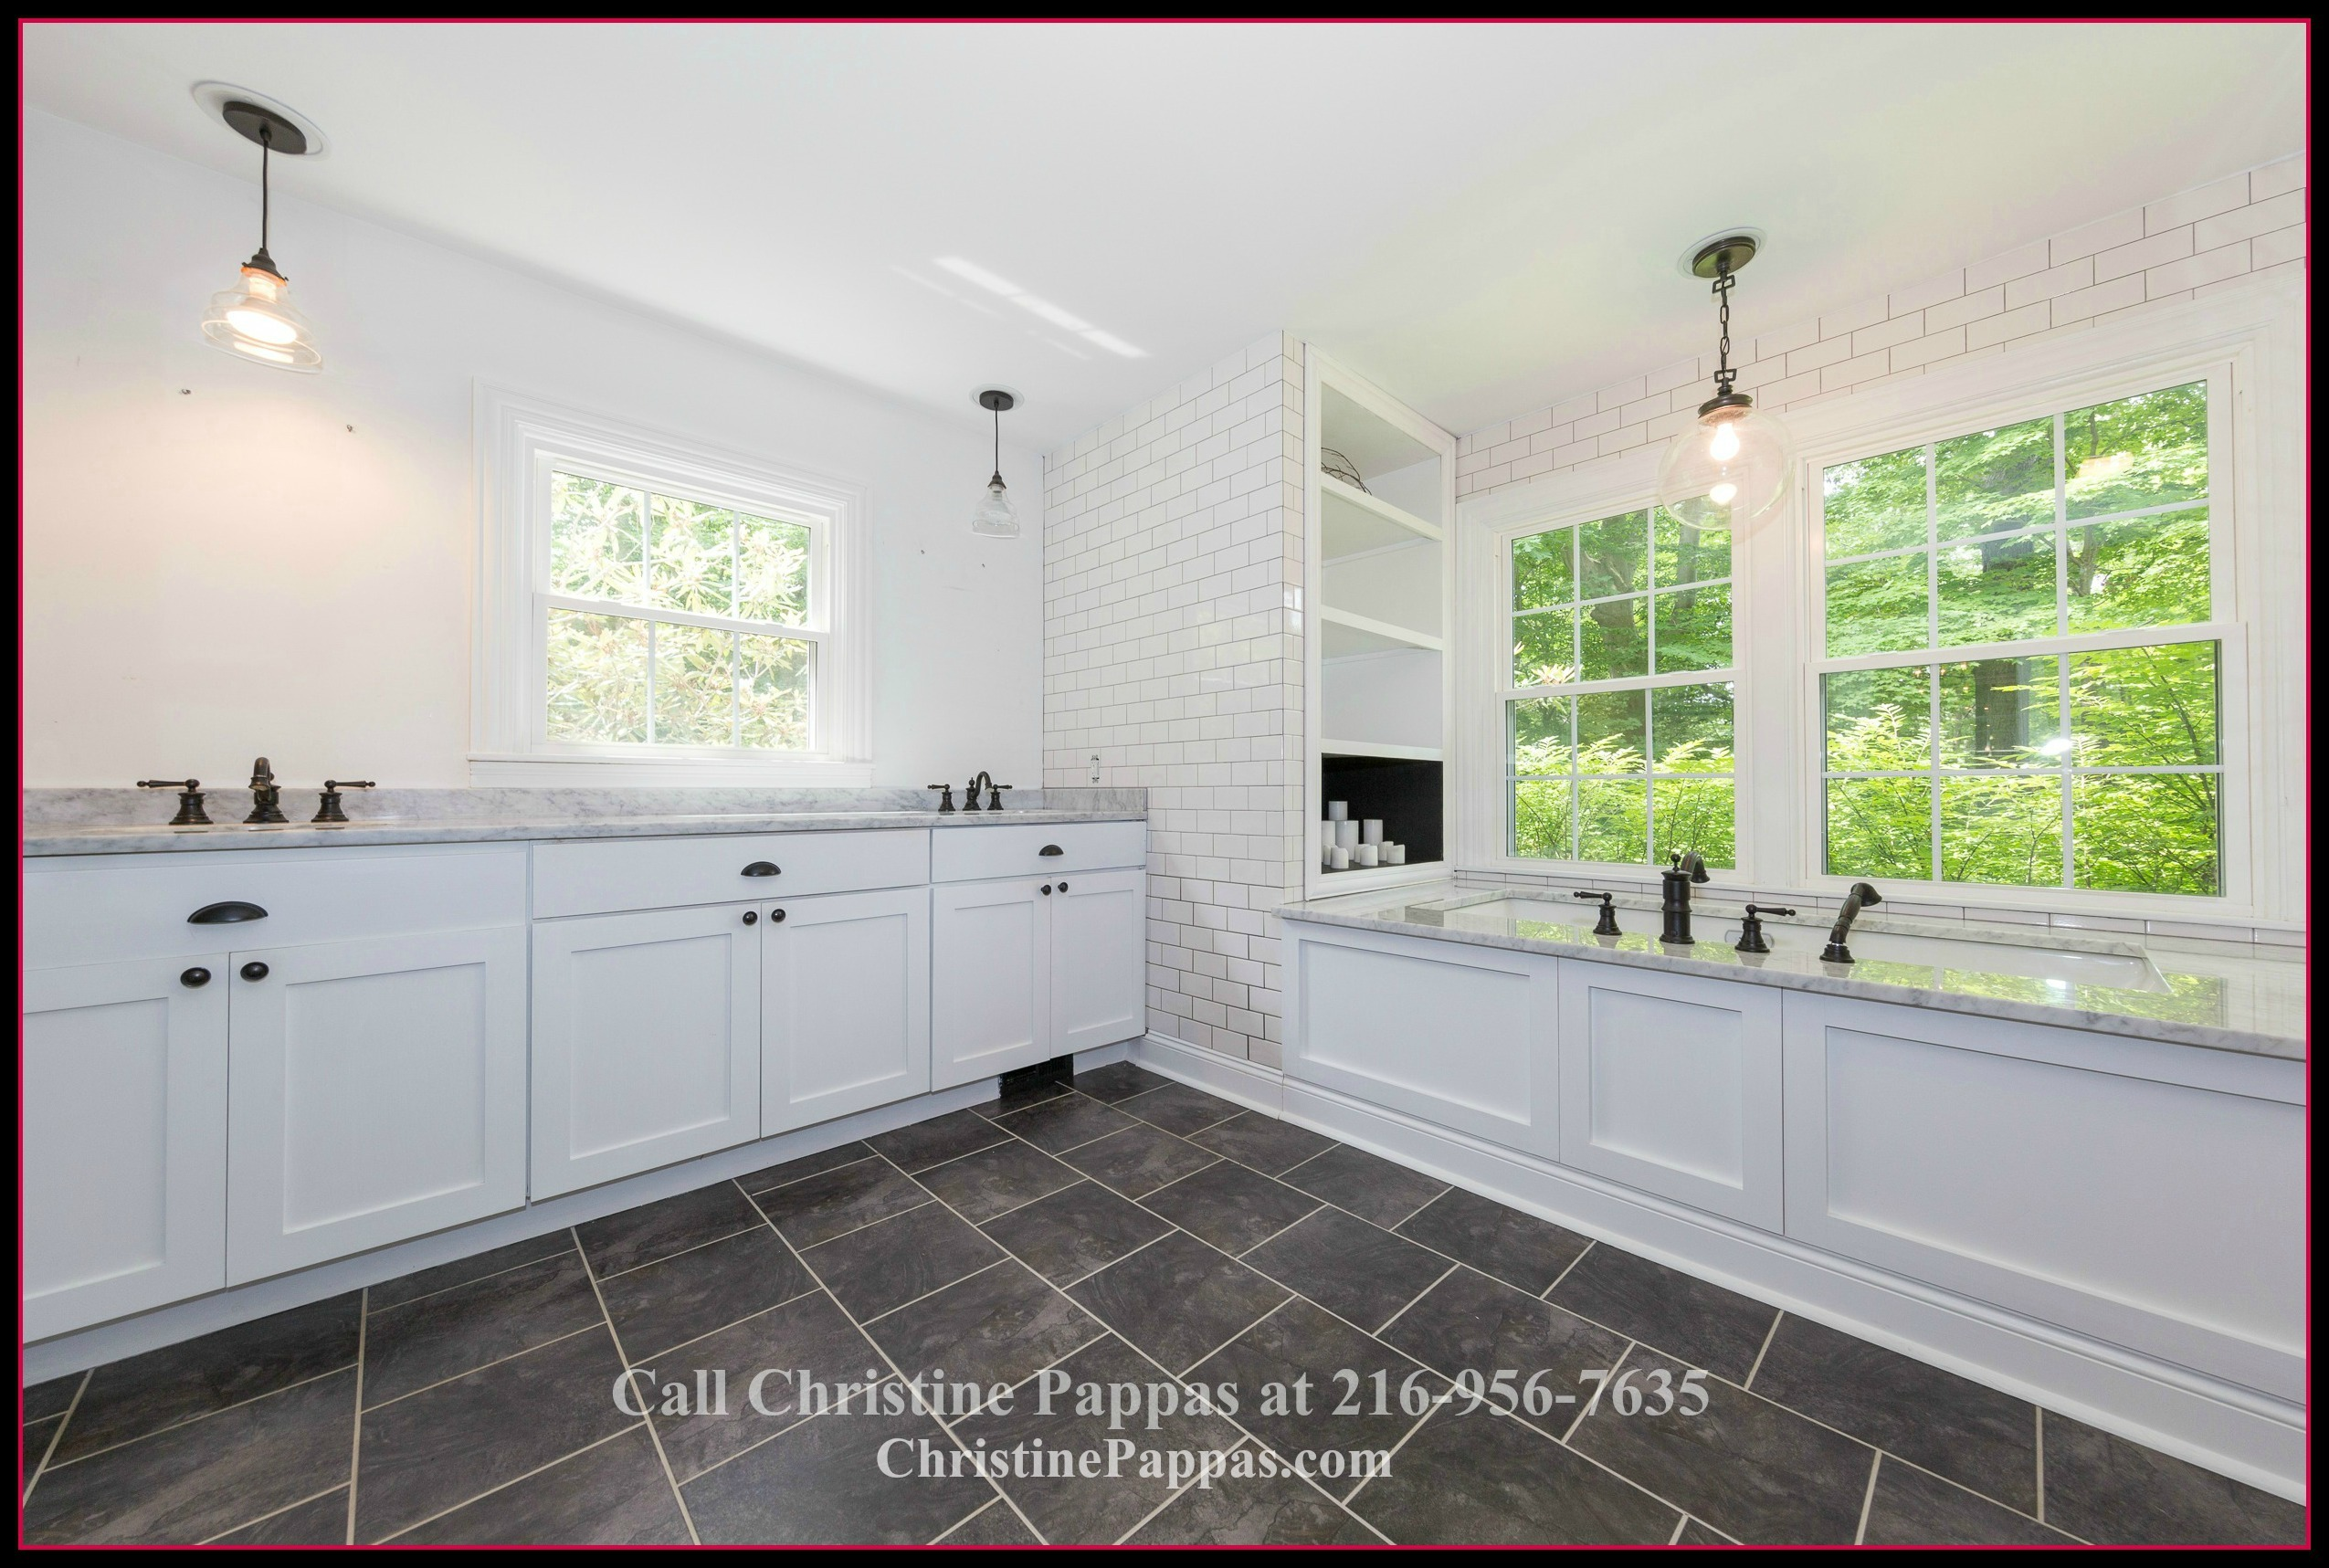 Sophistication is what the master bathroom of this home for sale in Gates Mills OH, exudes - with the spa-like features it brings, you will enjoy your private time.